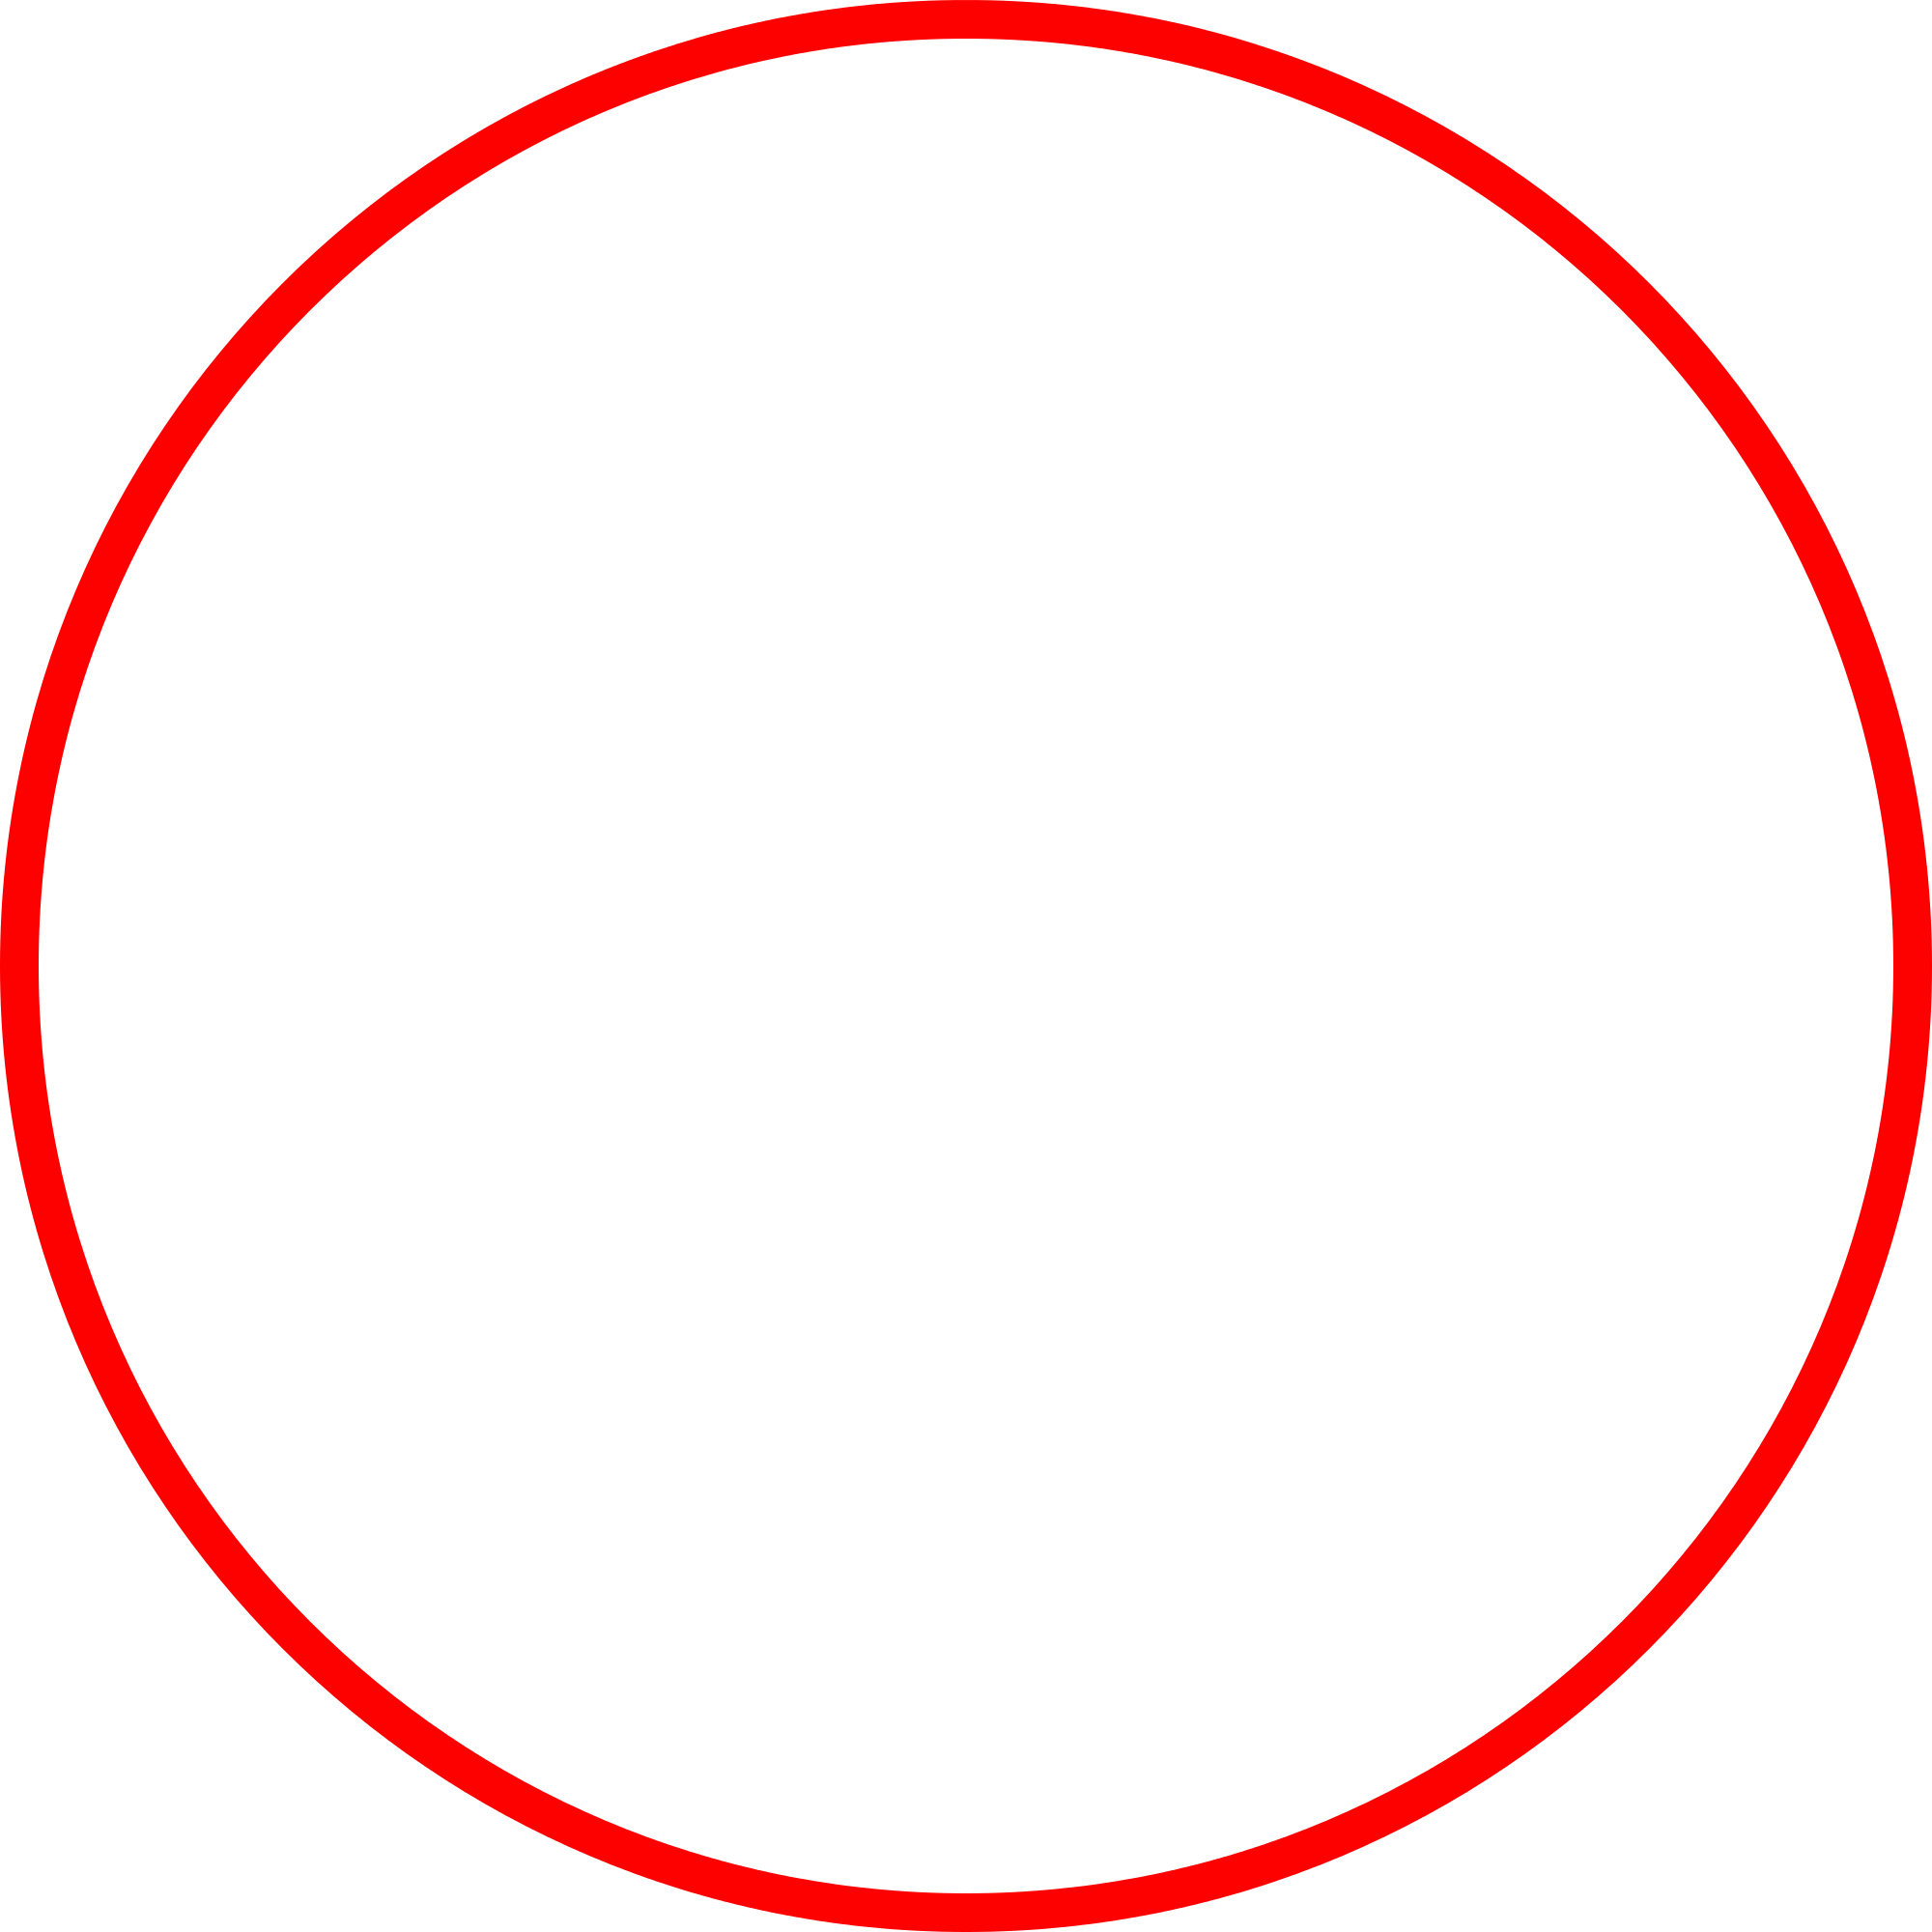 Red Circle Free Images png